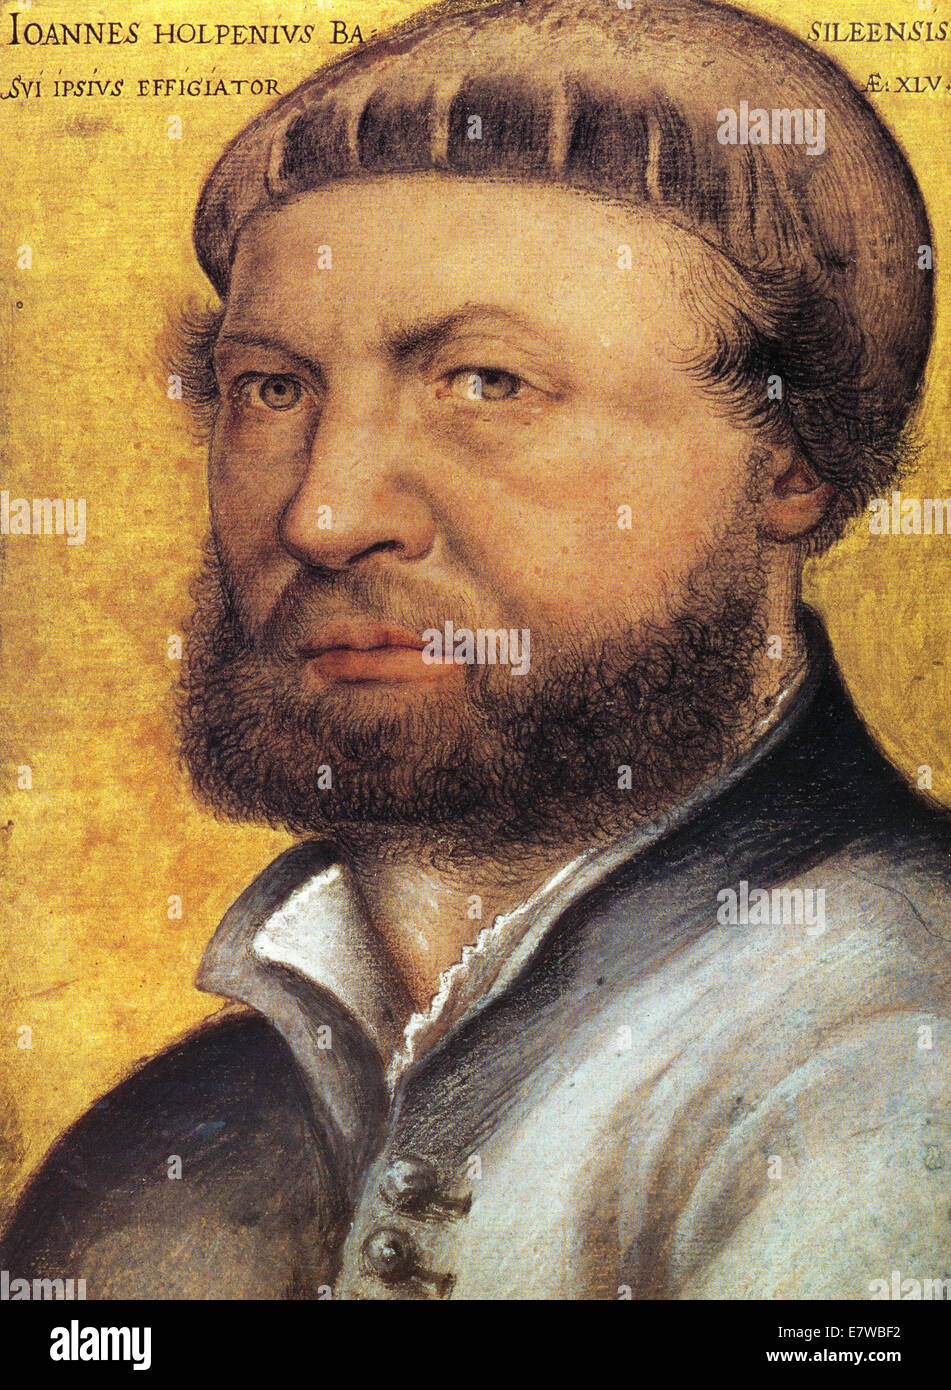 HANS HOLBEIN THE YOUNGER c 1497-1543) self portrait of the German artist - Stock Image